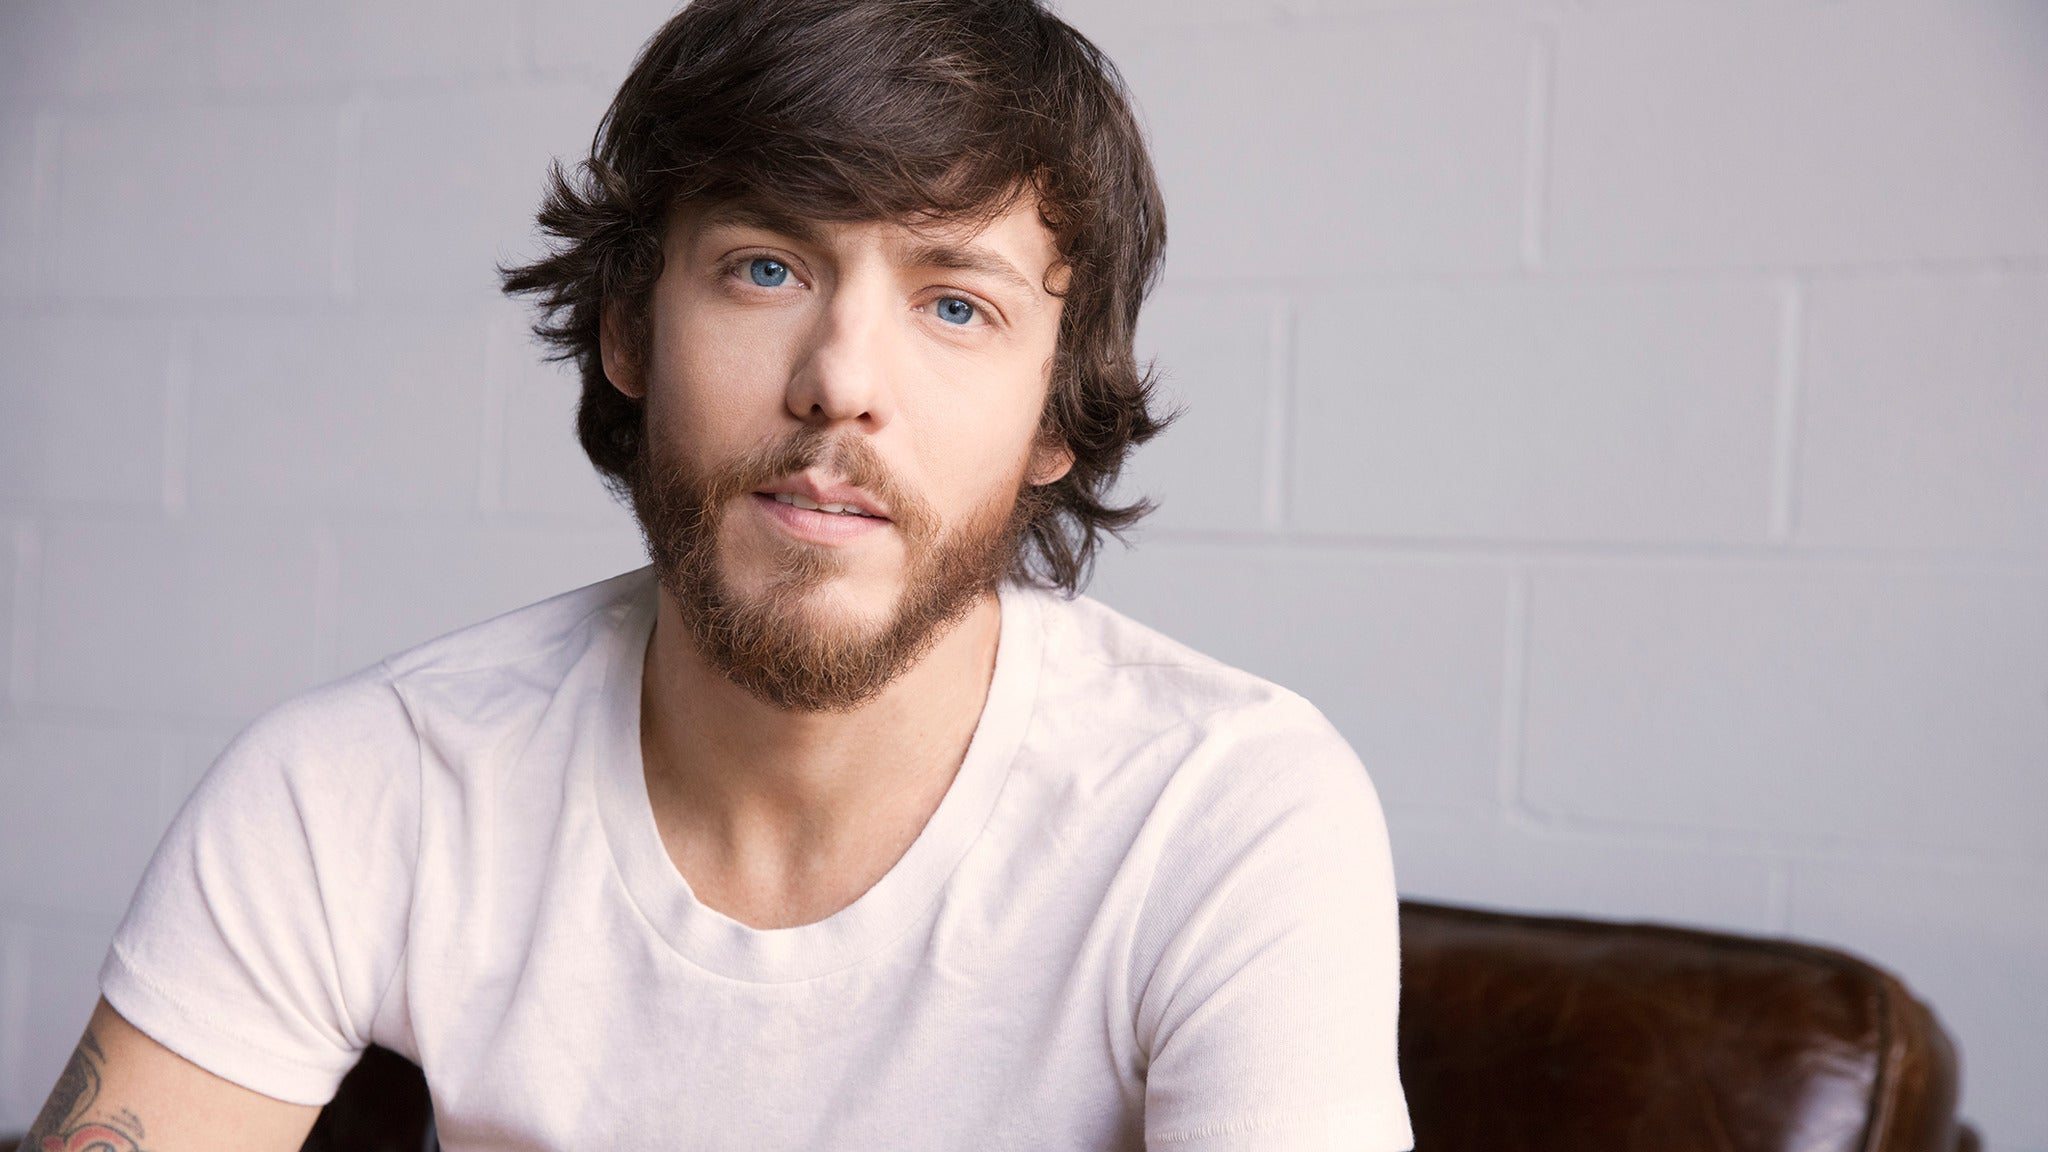 Chris Janson at Peoria Civic Center